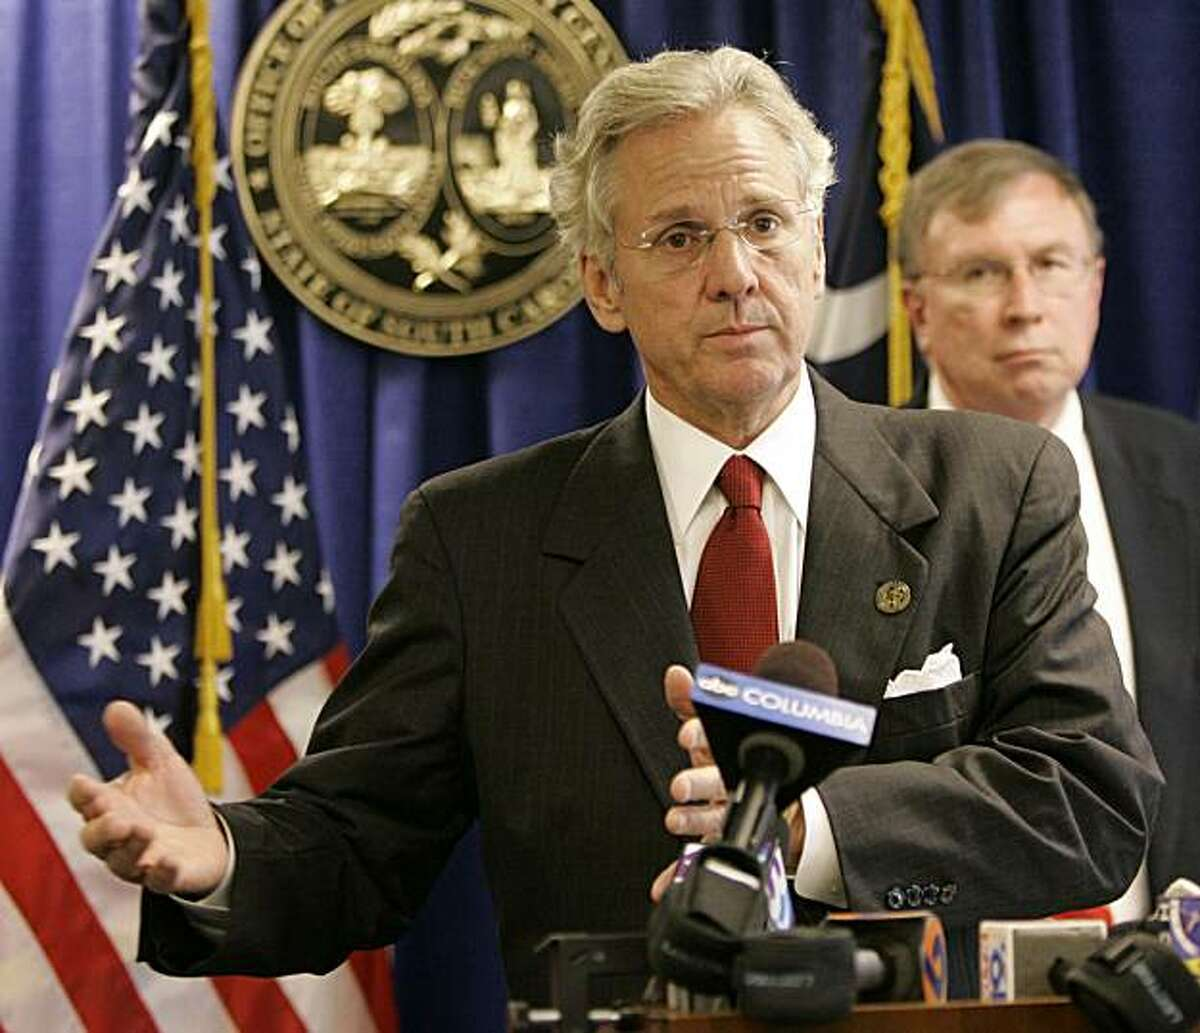 FILE - In this Thursday, June 7, 2007 file photo, South Carolina Attorney General Henry McMaster announces that the state has filed a long-awaited federal lawsuit that seeks to stop North Carolina from draining millions of gallons of water from a river that flows across the state line in Columbia, S.C. Republican South Carolina Attorney General Henry McMaster and a dozen of his counterparts are sending a letter Wednesday night, Dec. 30, 2009 to House Speaker Nancy Pelosi and Senate Majority Leader Harry Reid objecting to Nebraska getting a break on Medicaid payments(AP Photo/Mary Ann Chastain, File)